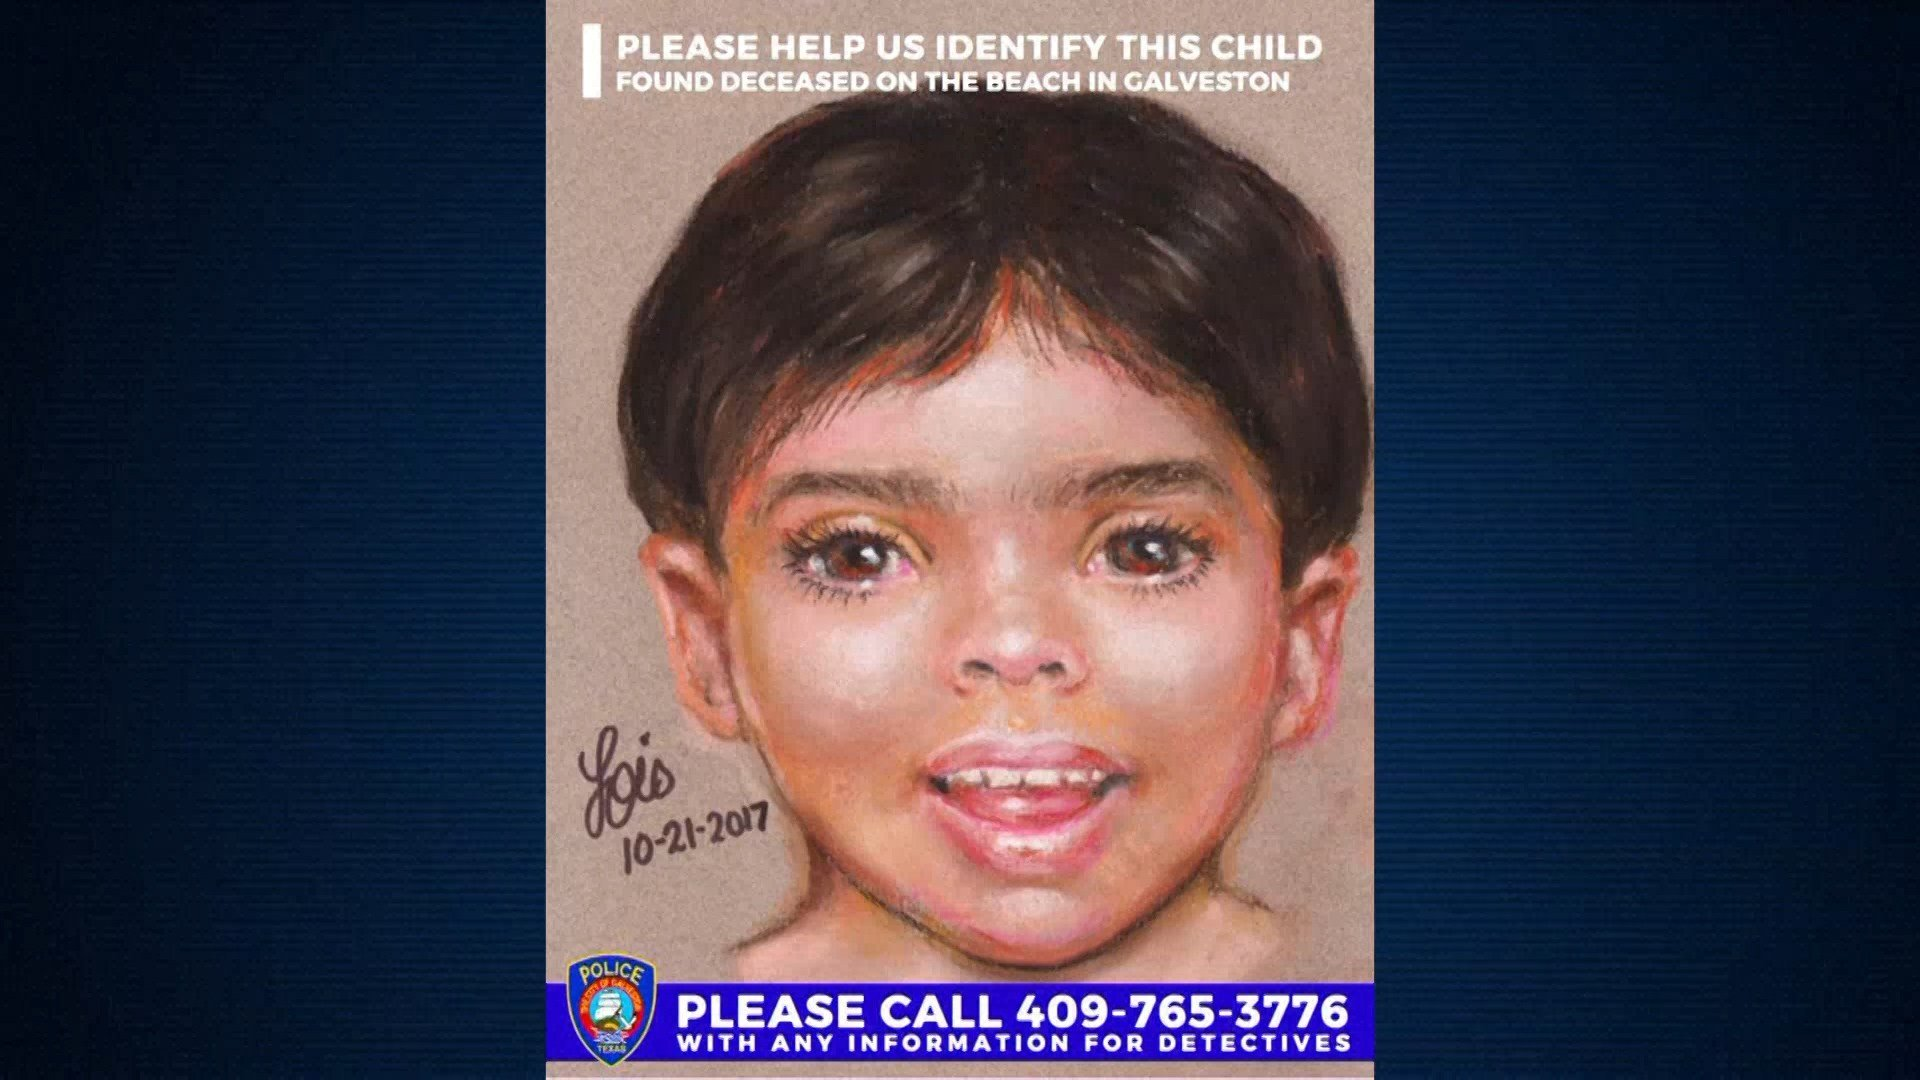 Young child found dead on Galveston beach